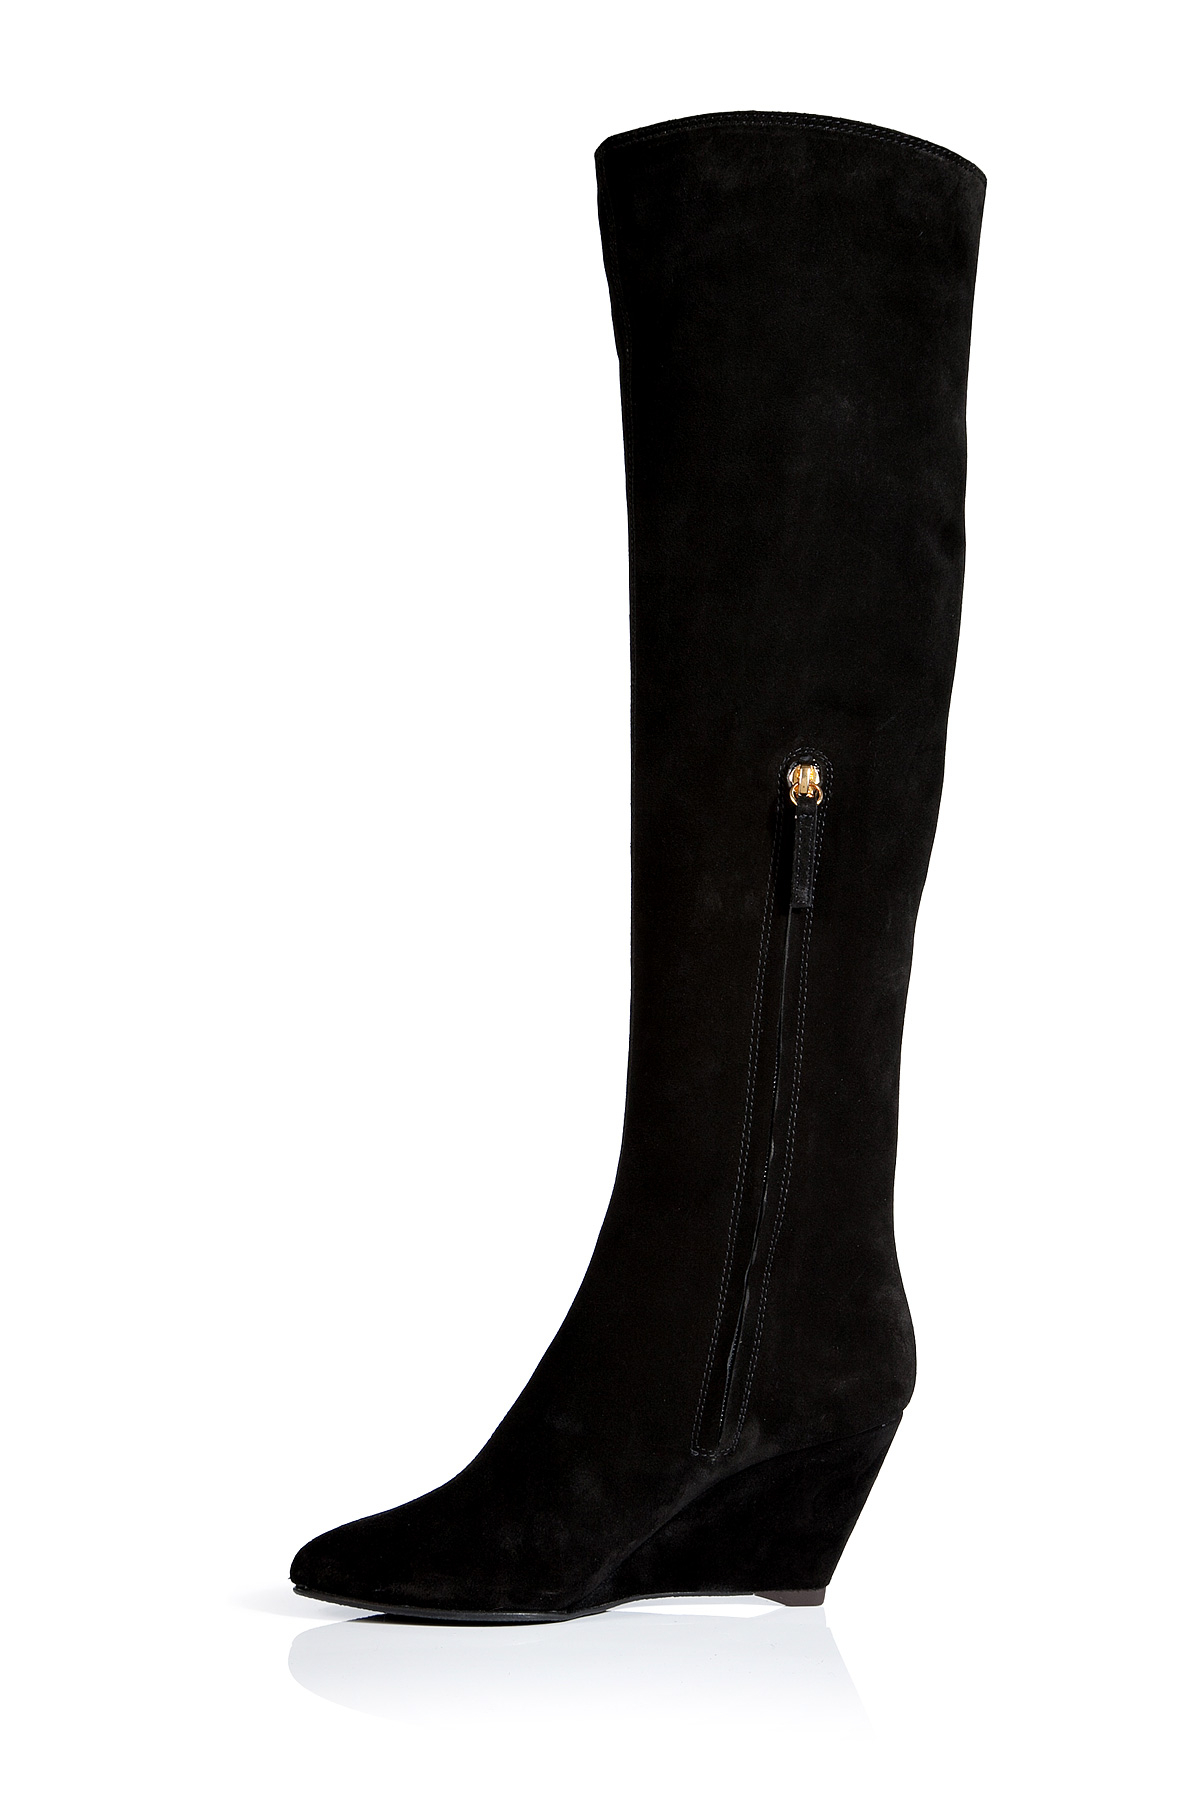 Giuseppe zanotti Suede Knee-high Wedge Boots in Black | Lyst